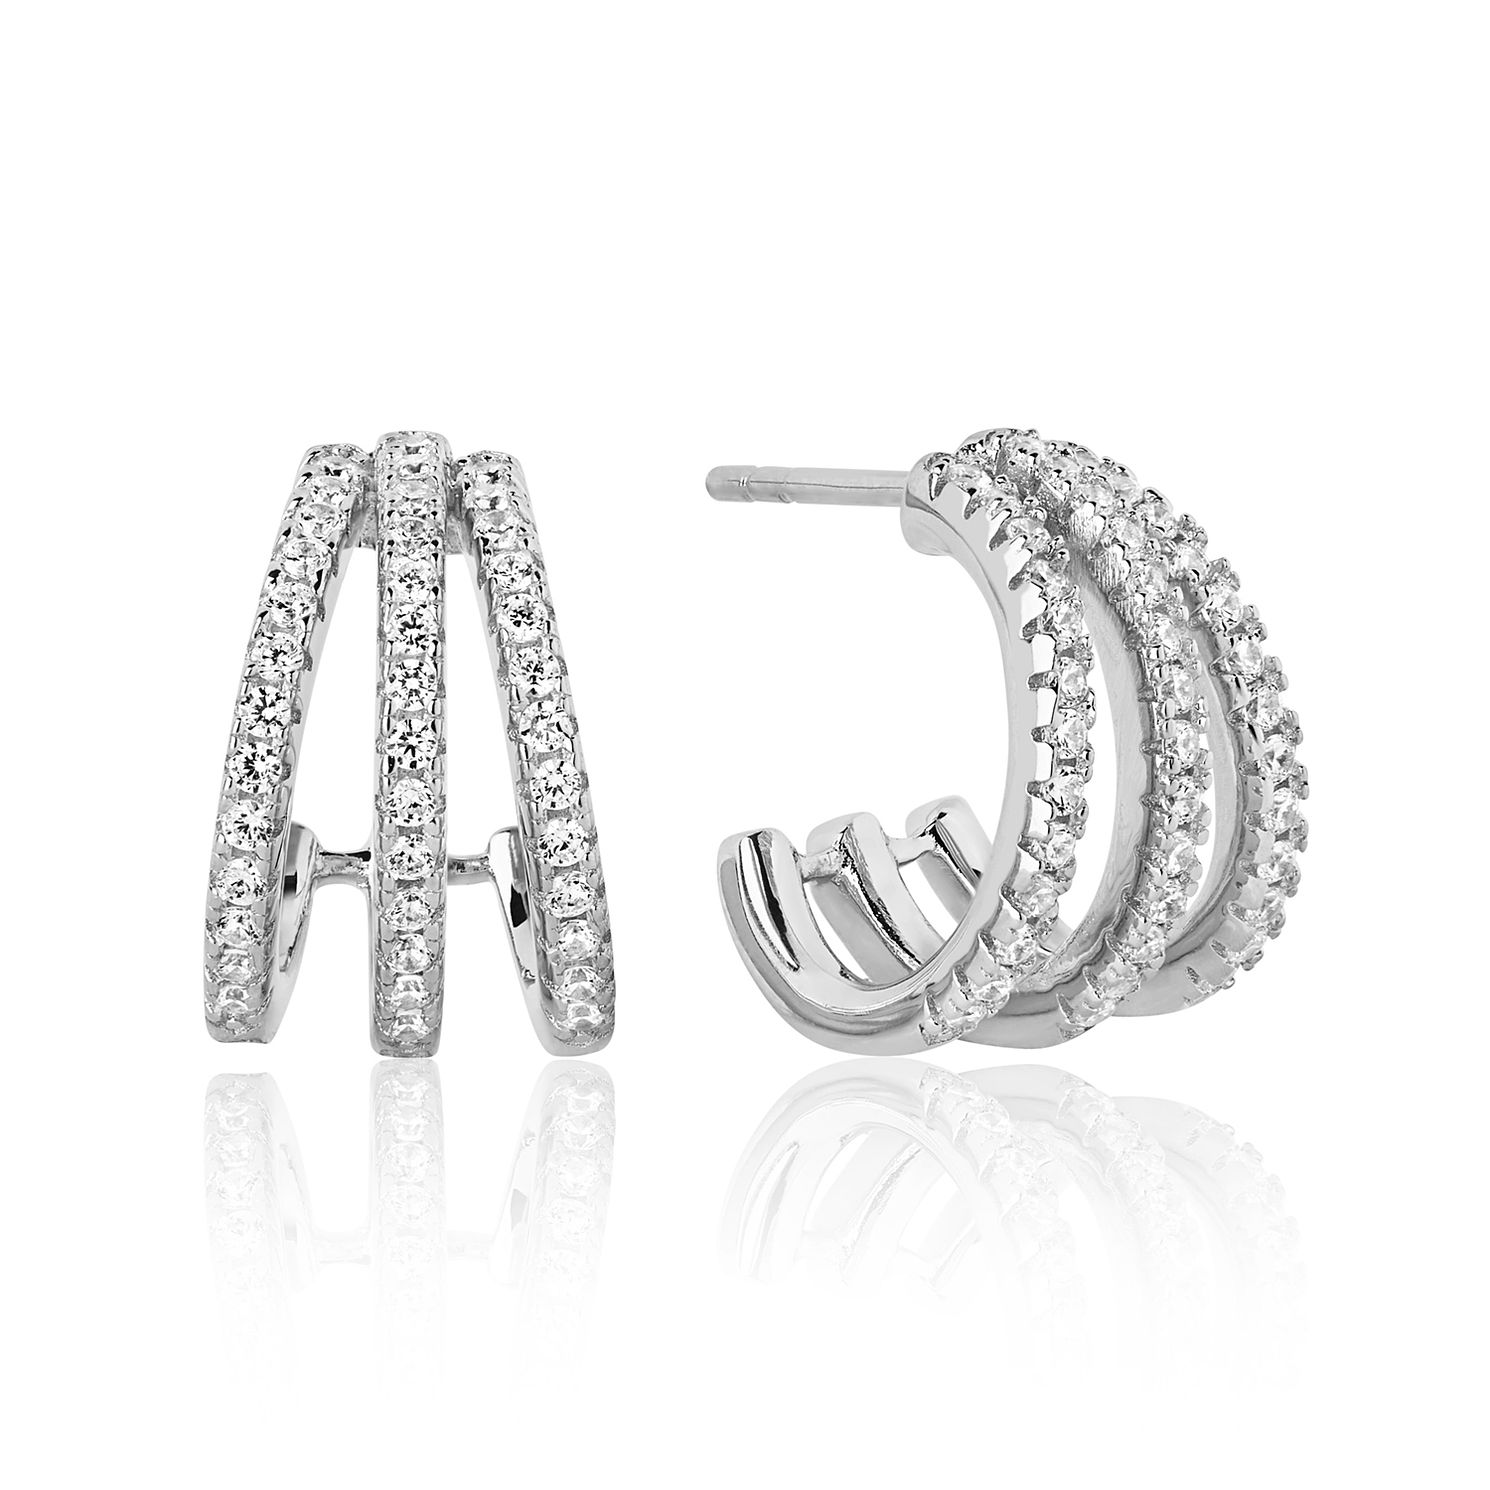 Sif Jakobs Silver Rhodium Plated Zirconia 14mm Hoop Earrings - Product number 1160745